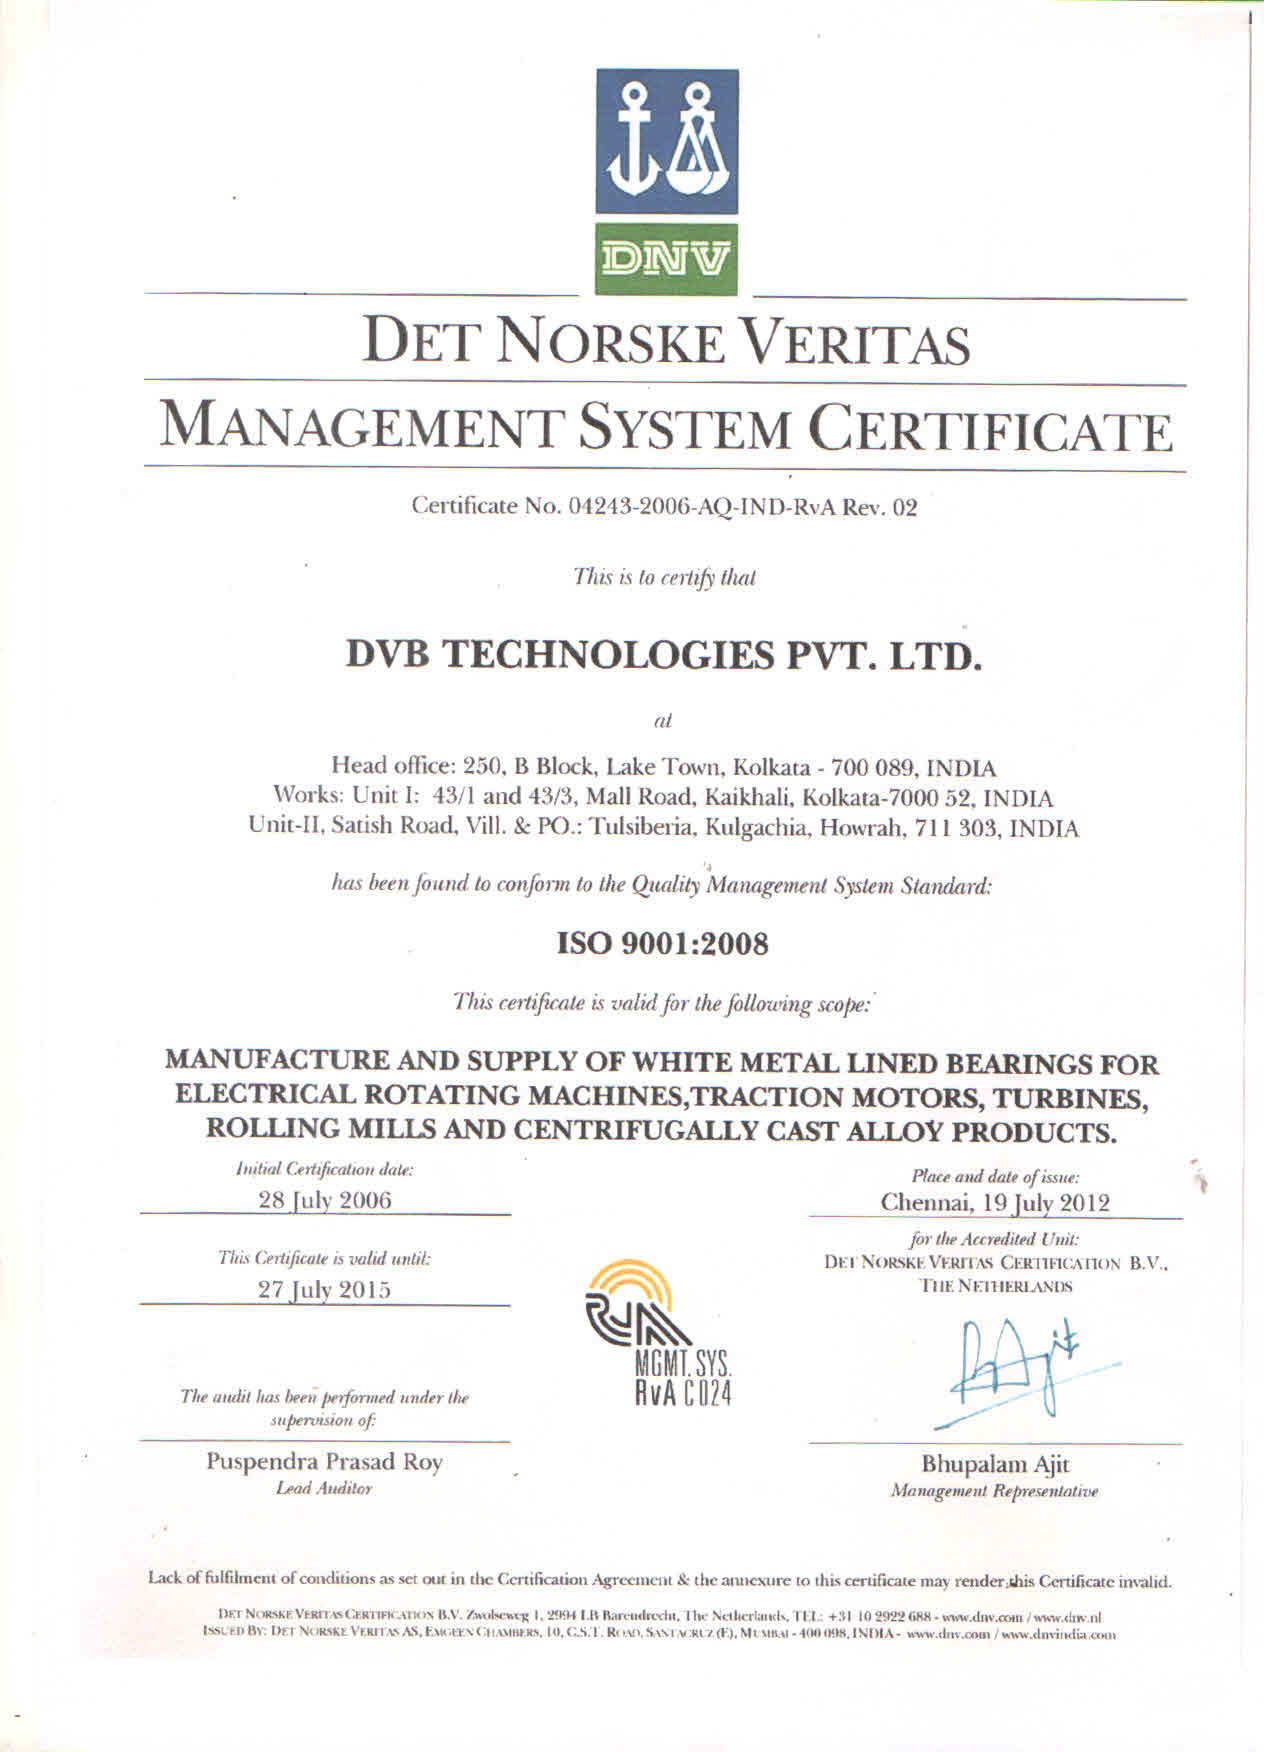 Iso Certifications Dvb Technologies Pvt Ltd Specialized In White